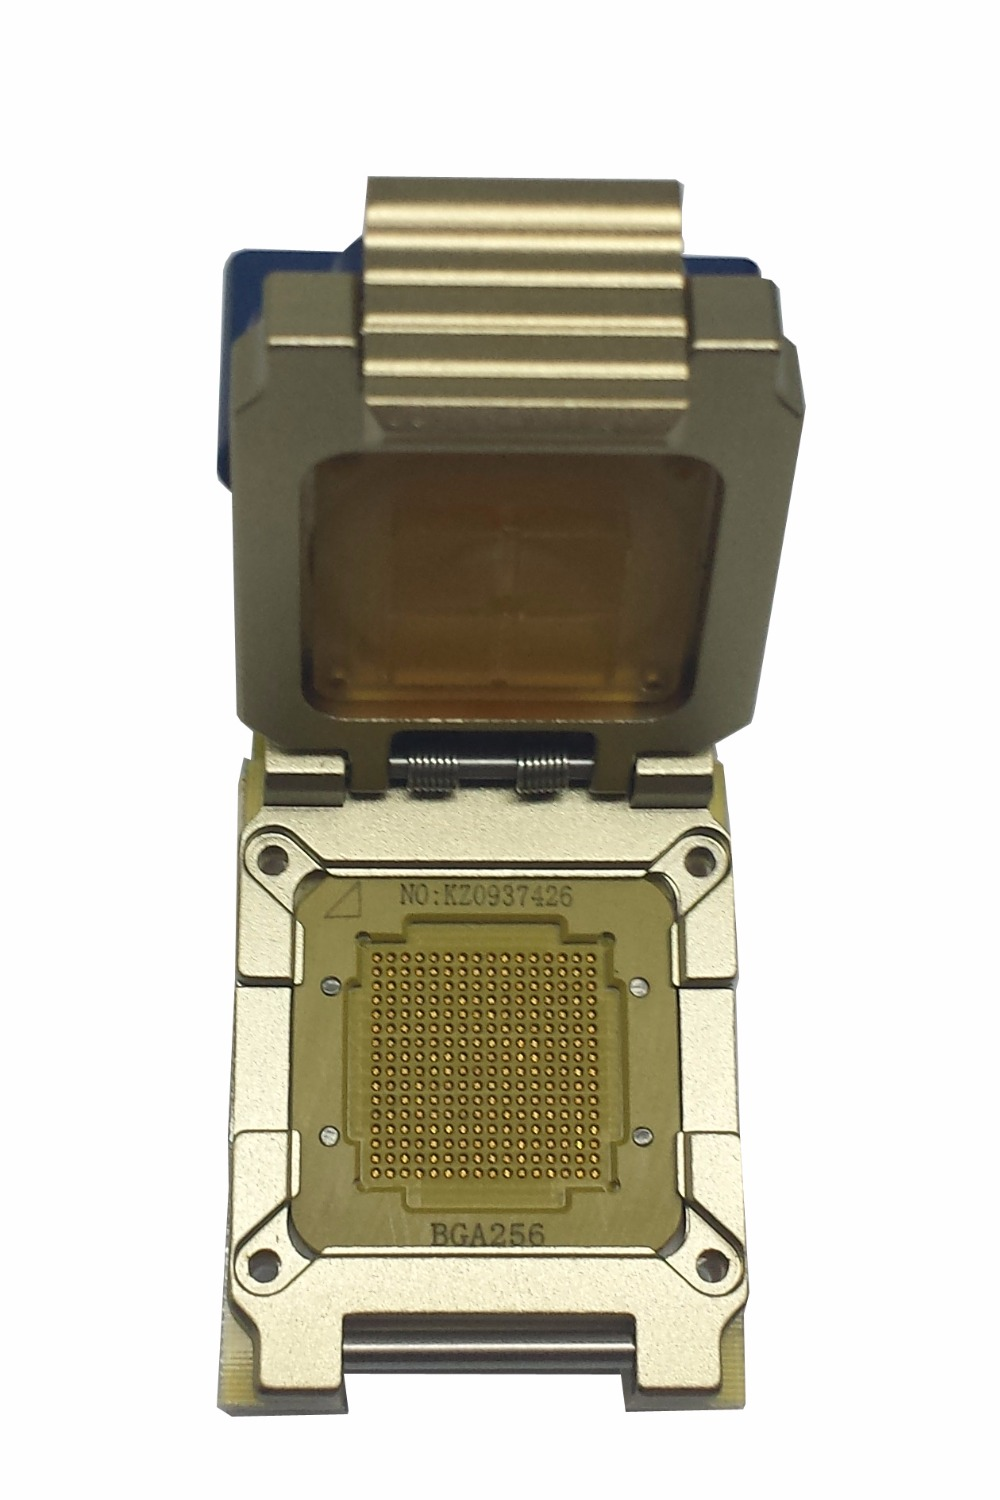 Analysis BGA256 high stable socket for IC design R&D test in Lab,research center and UFS series test